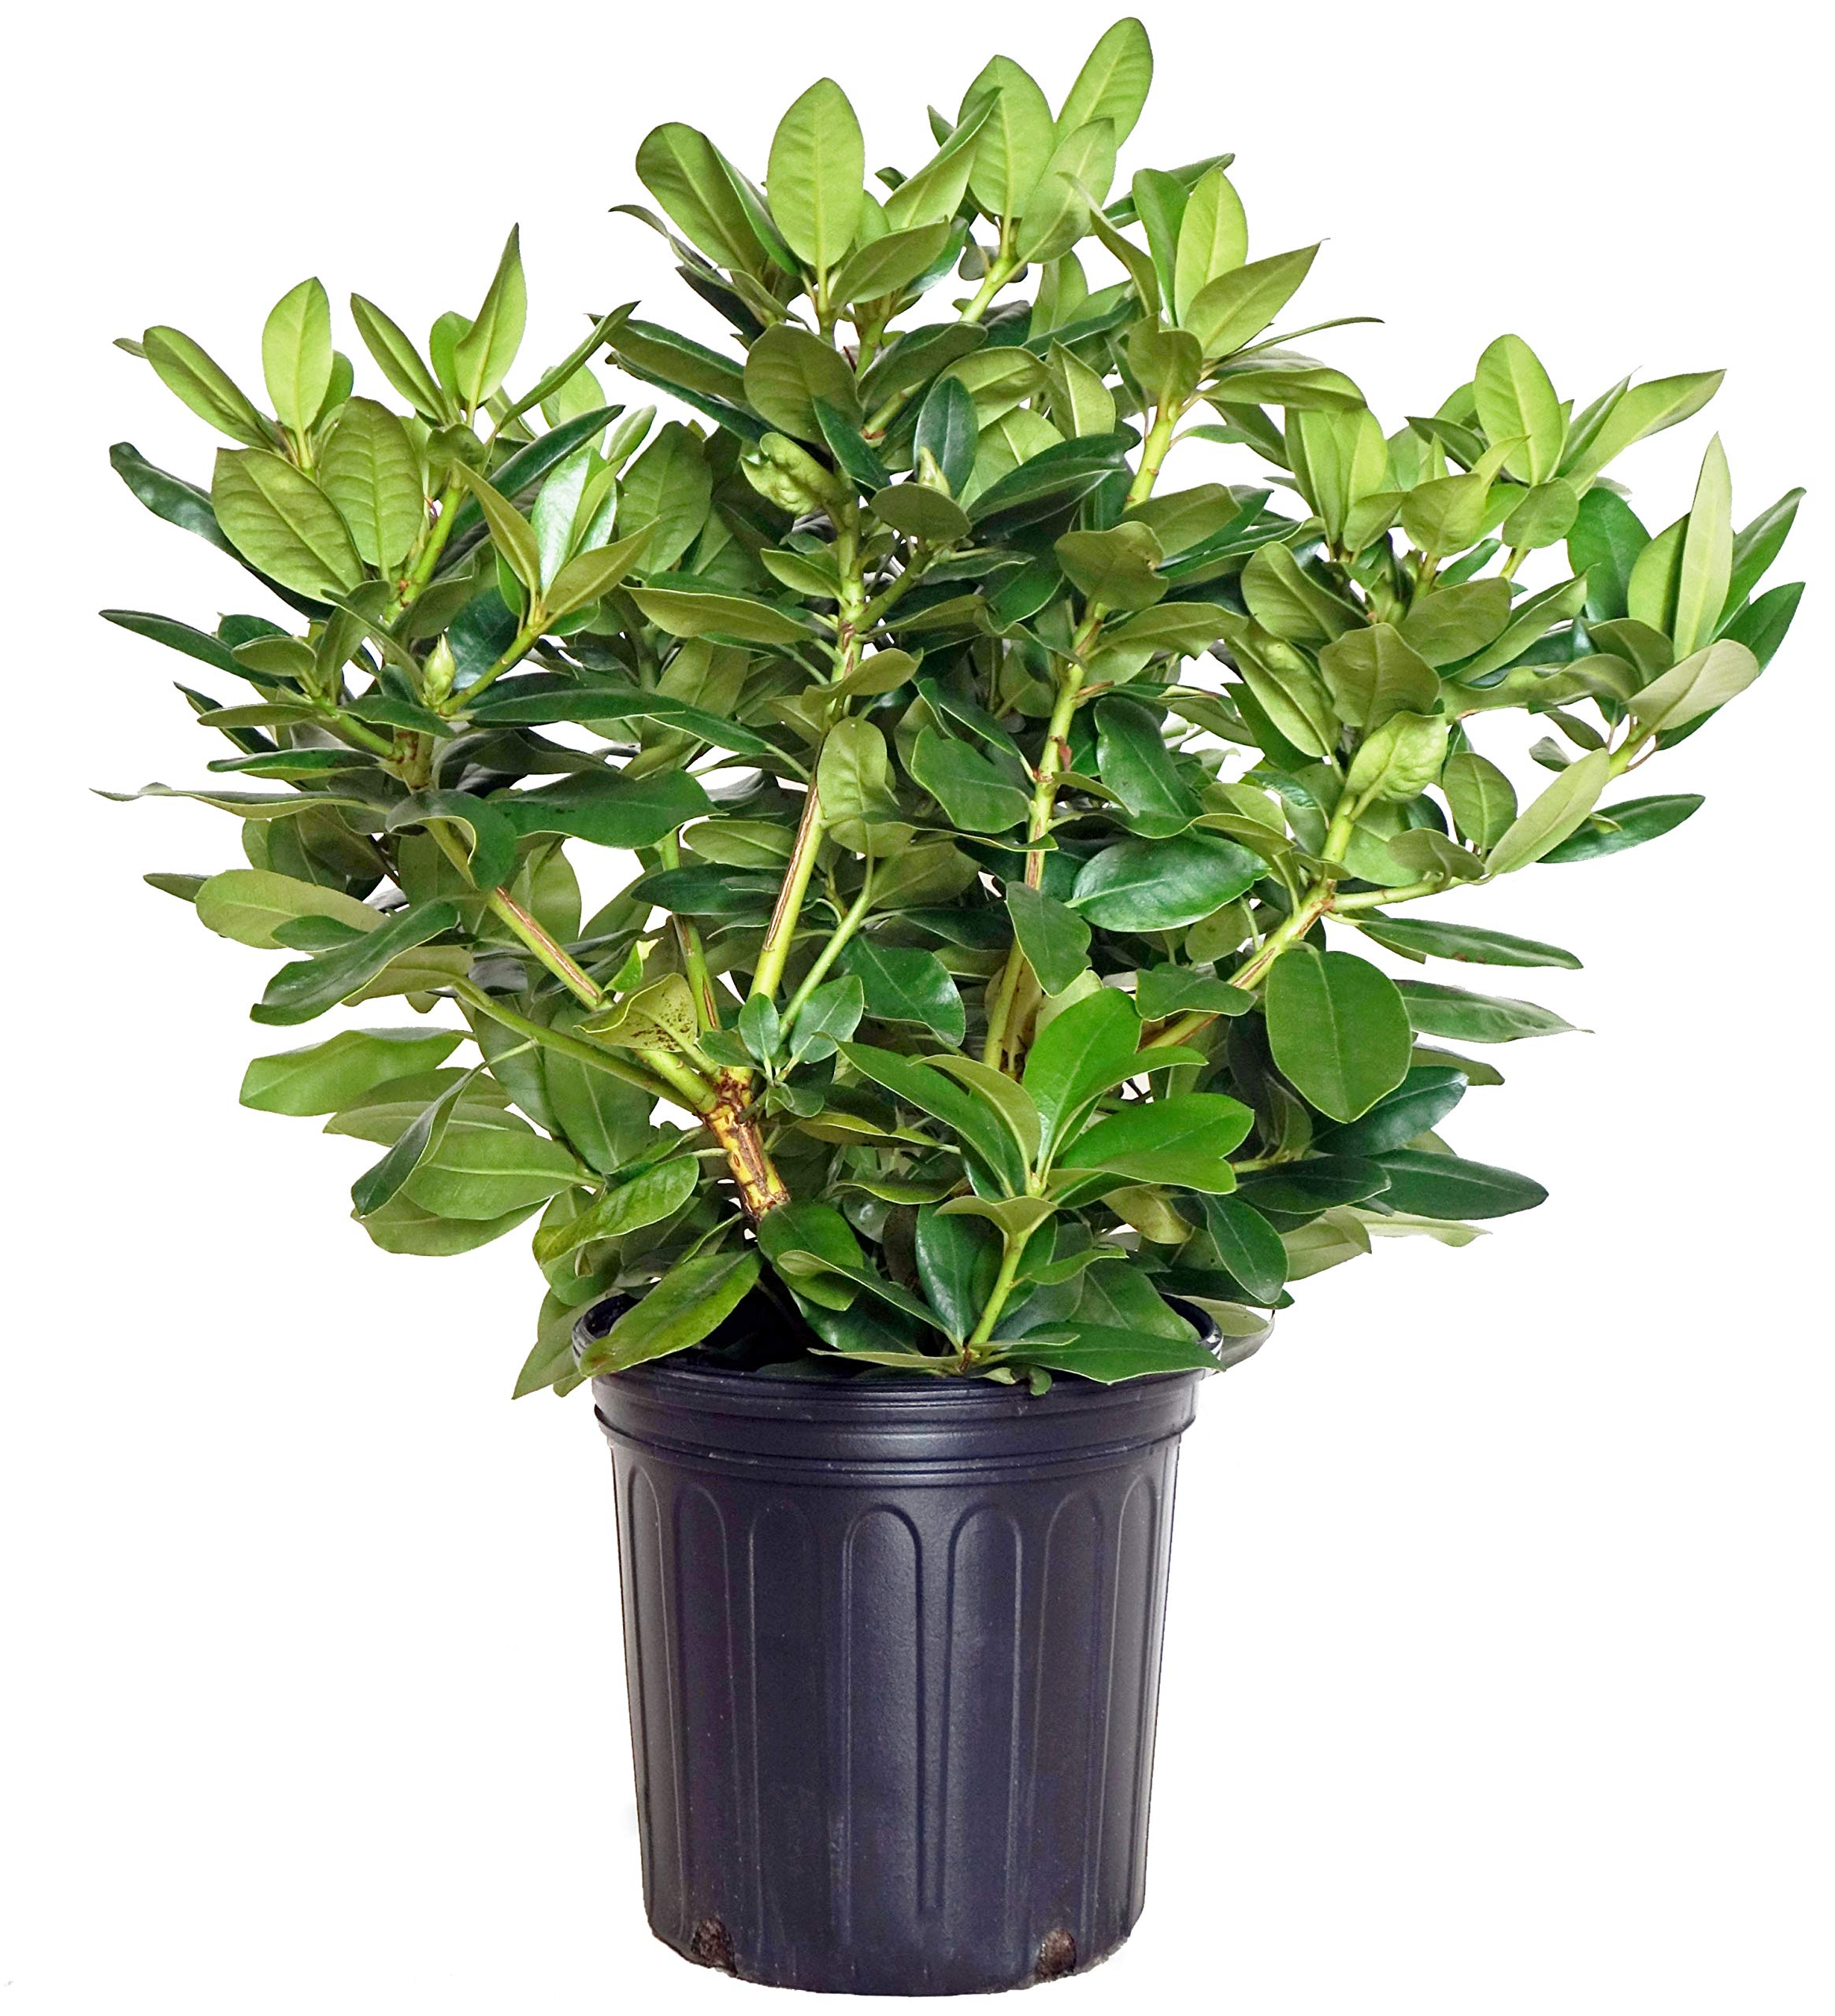 Green Promise Farms Rhododendron 'Minnetonka' (Rhododendron) Evergreen, Pale Lavender Flowers, 2 - Size Container